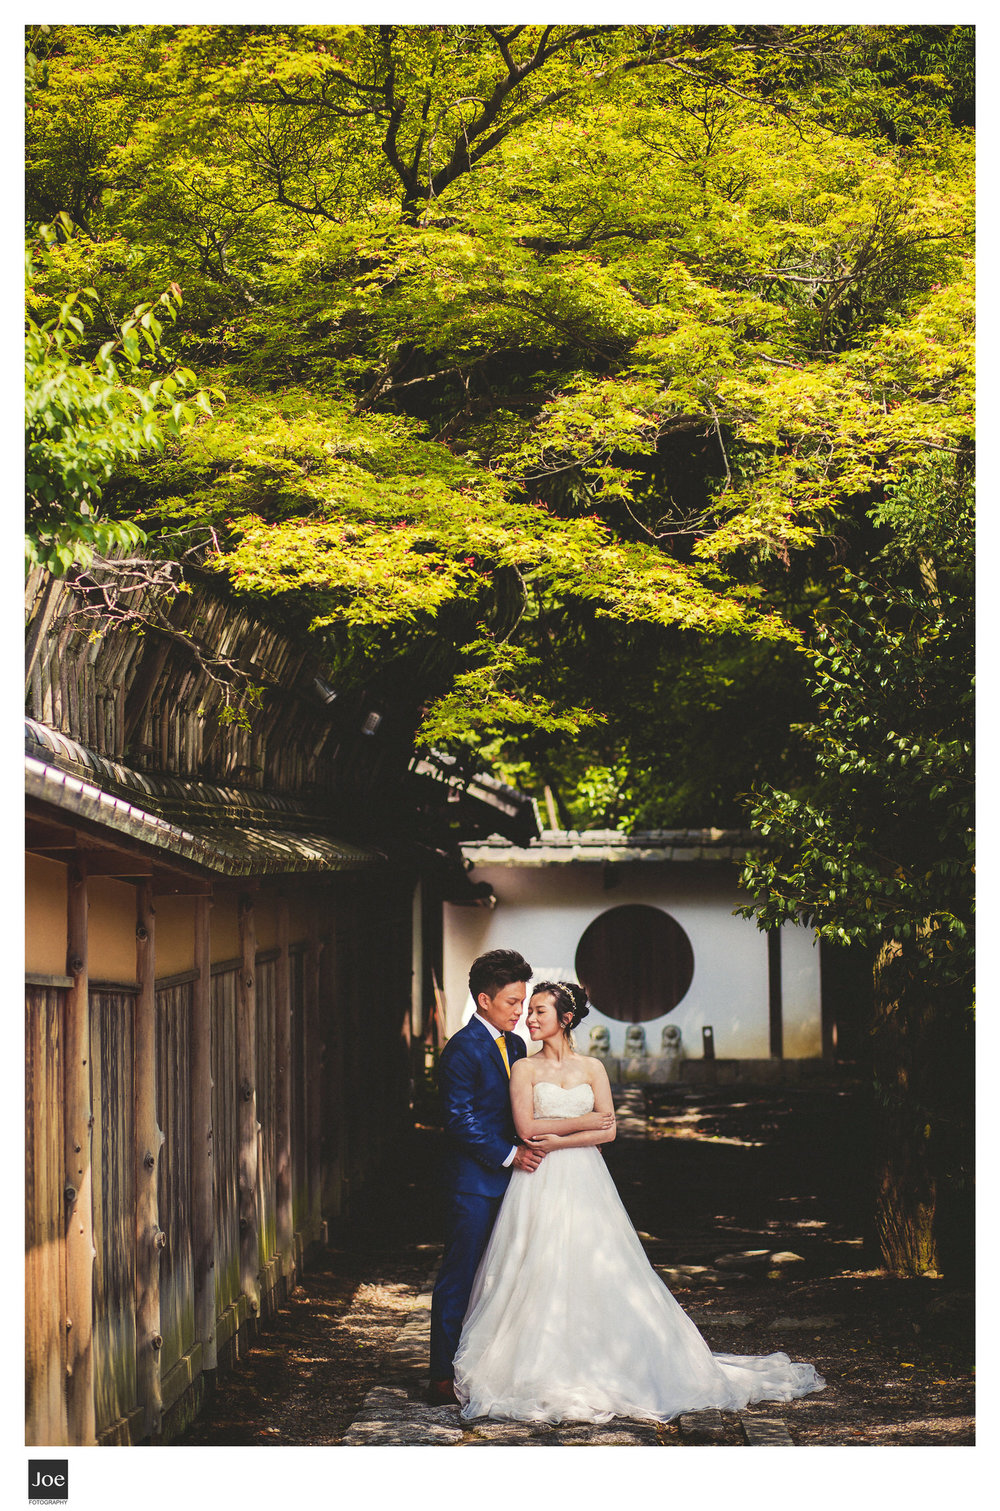 75-kyoto-pre-wedding-angela-danny-joe-fotography.jpg